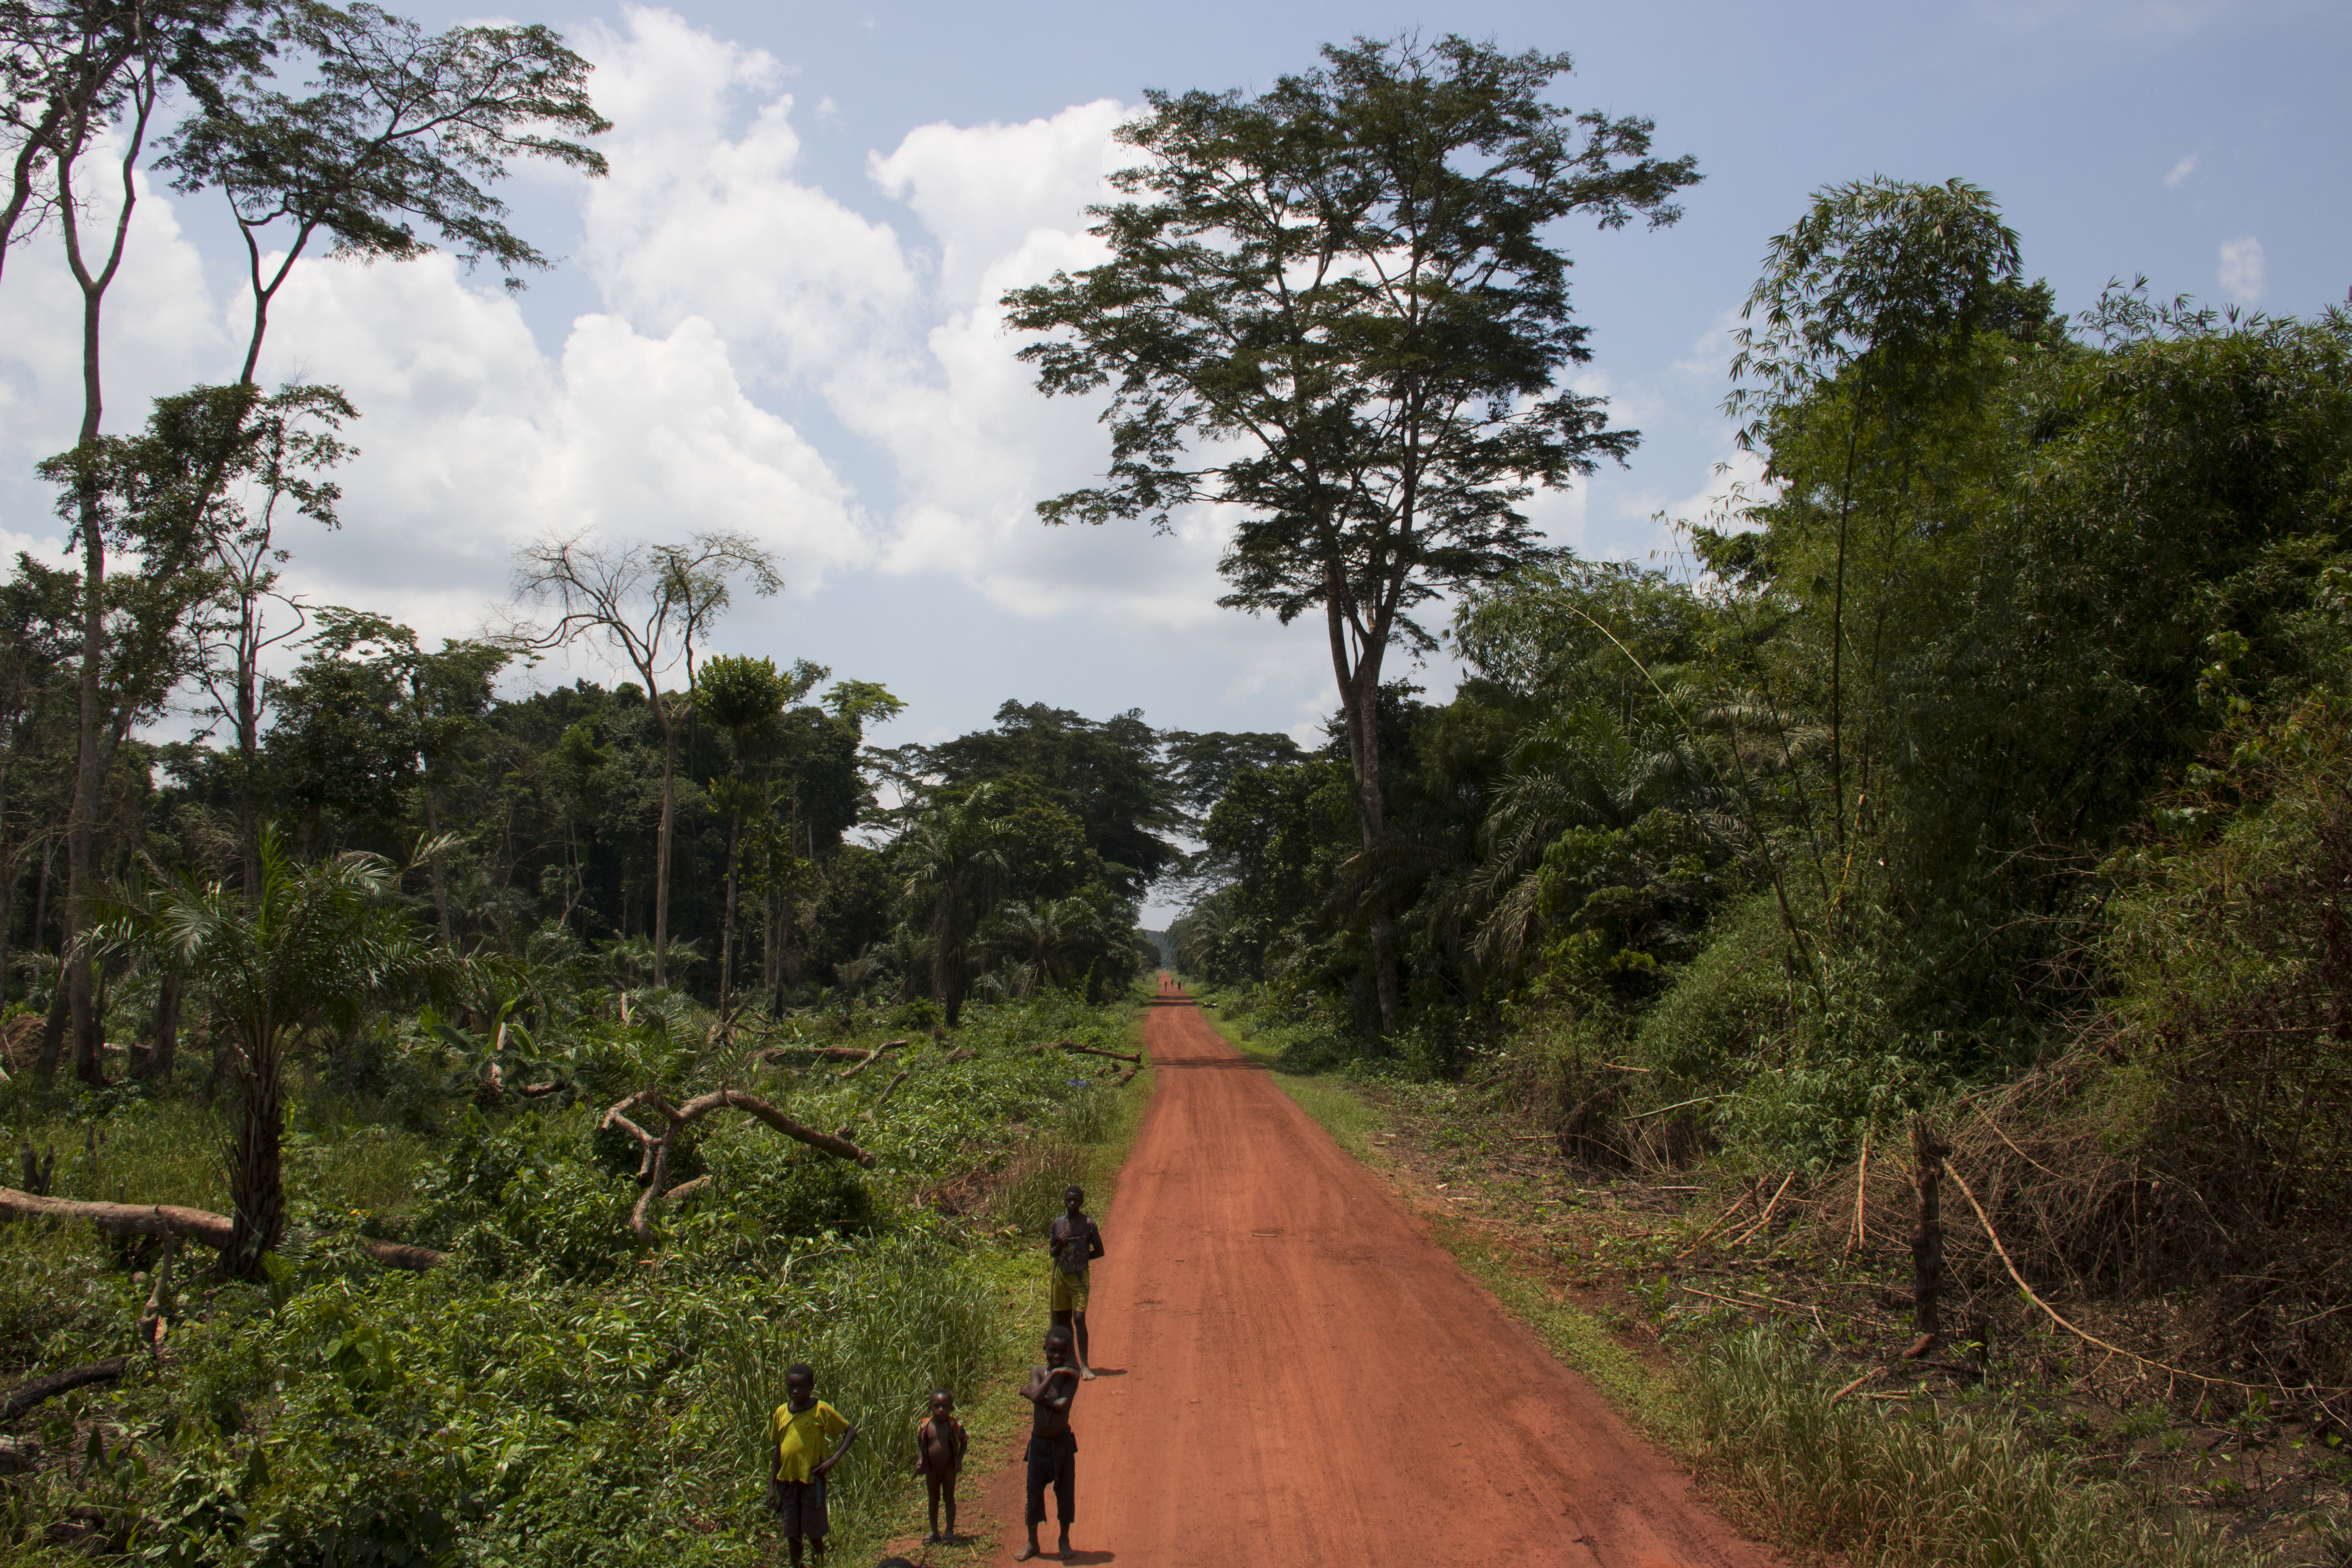 <p>Near the village of Ilanga in northwestern DRC. Photo by Molly Bergen/WCS, WWF, WRI</p>